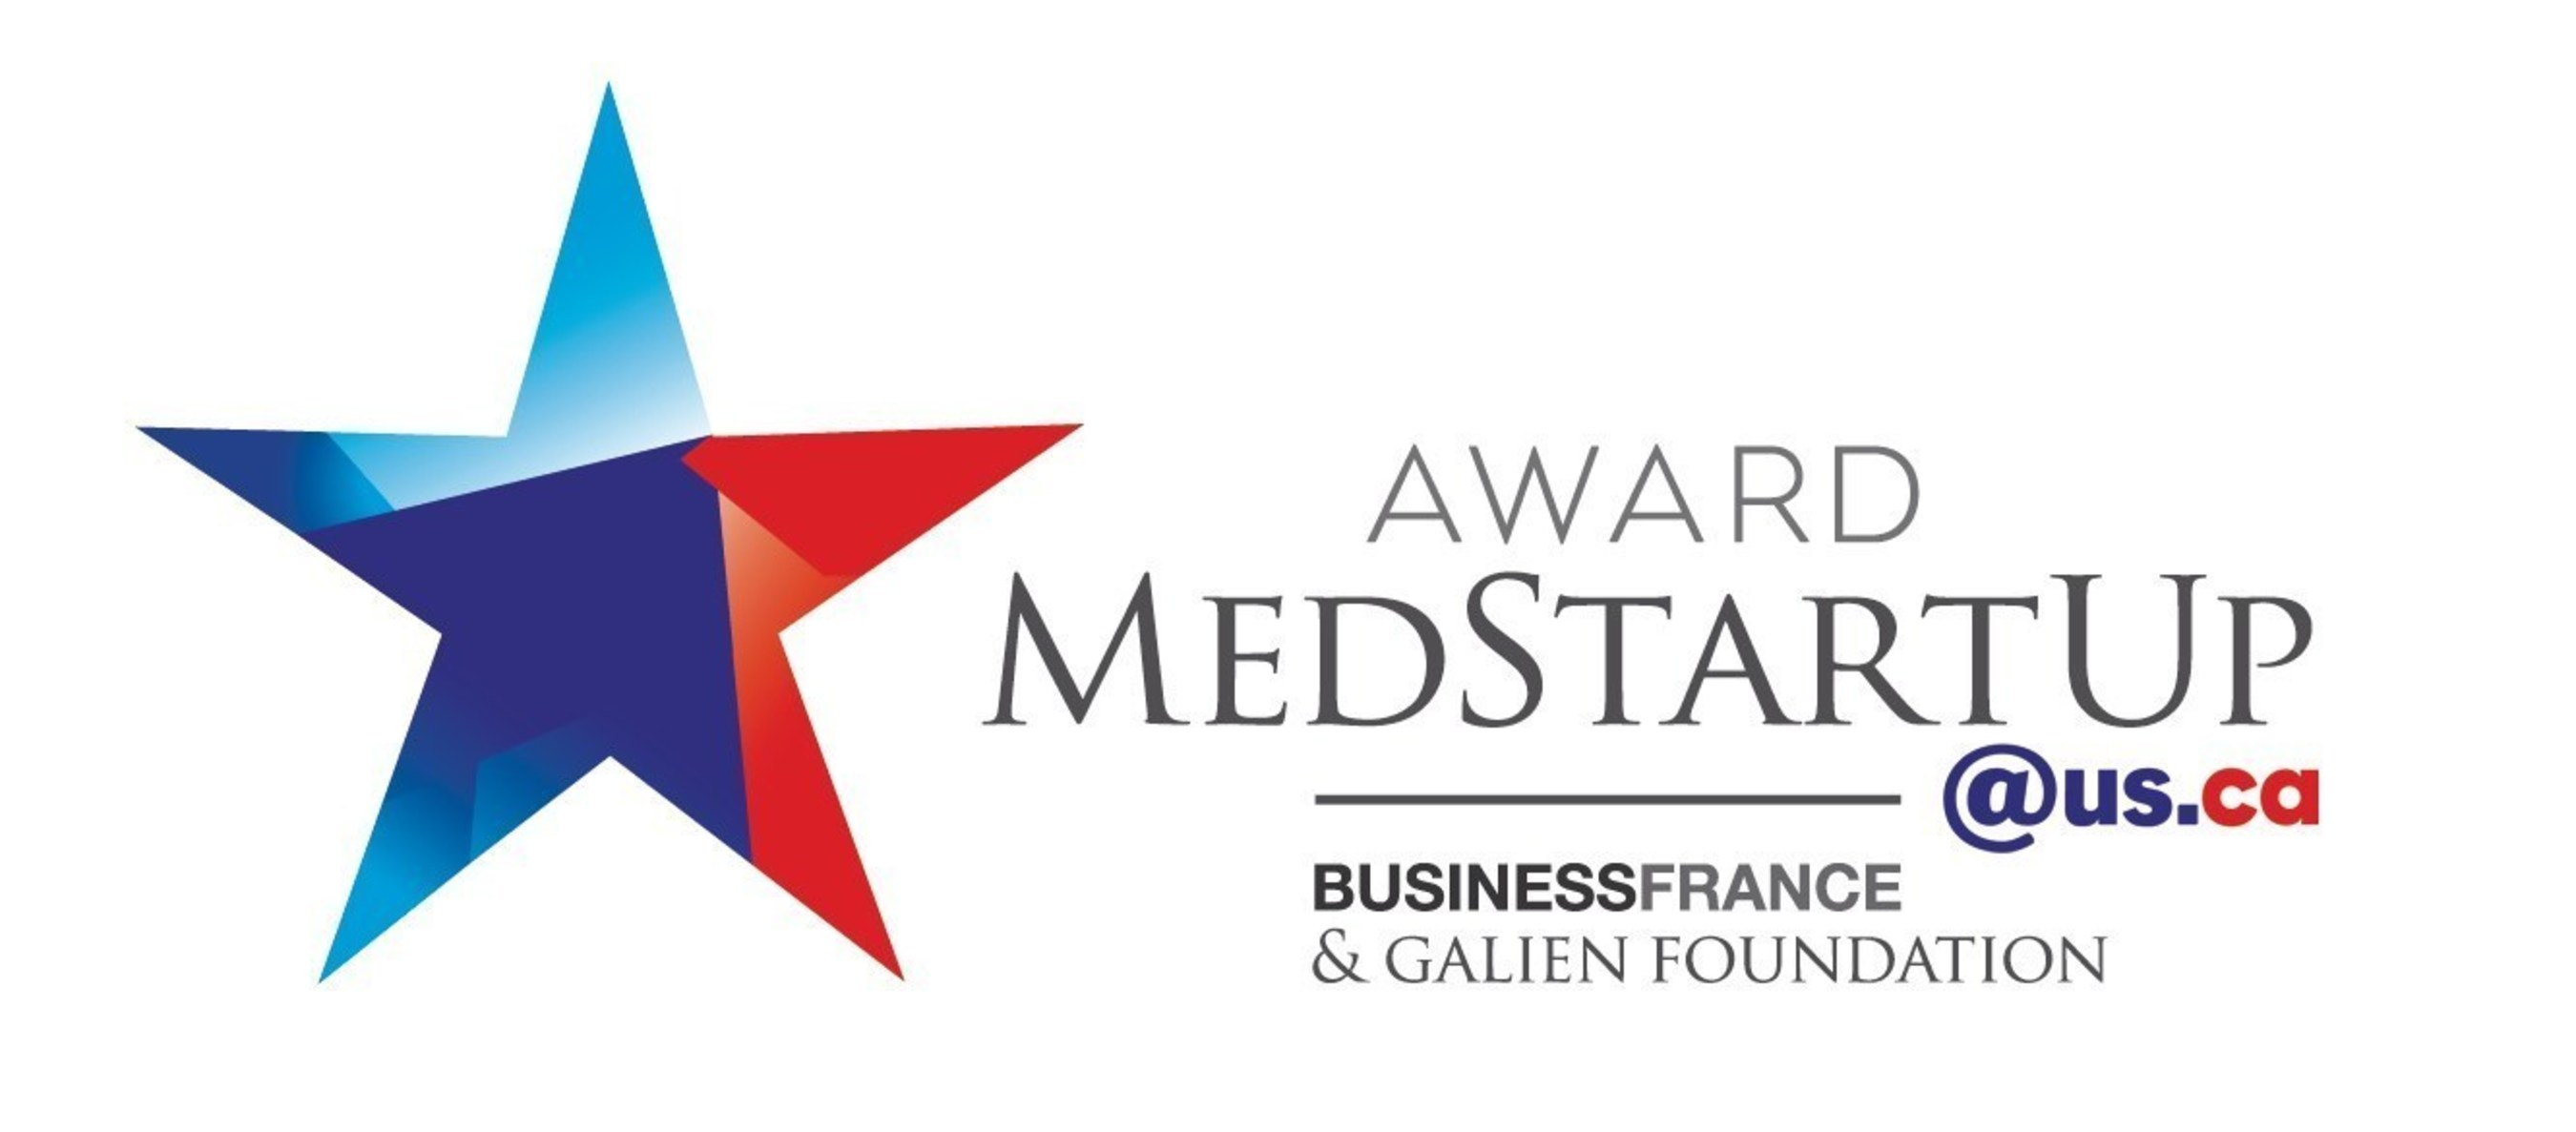 MedStartUp will bring together over 50 French startups and 250 US industry leaders to drive the next wave of R&D innovation.